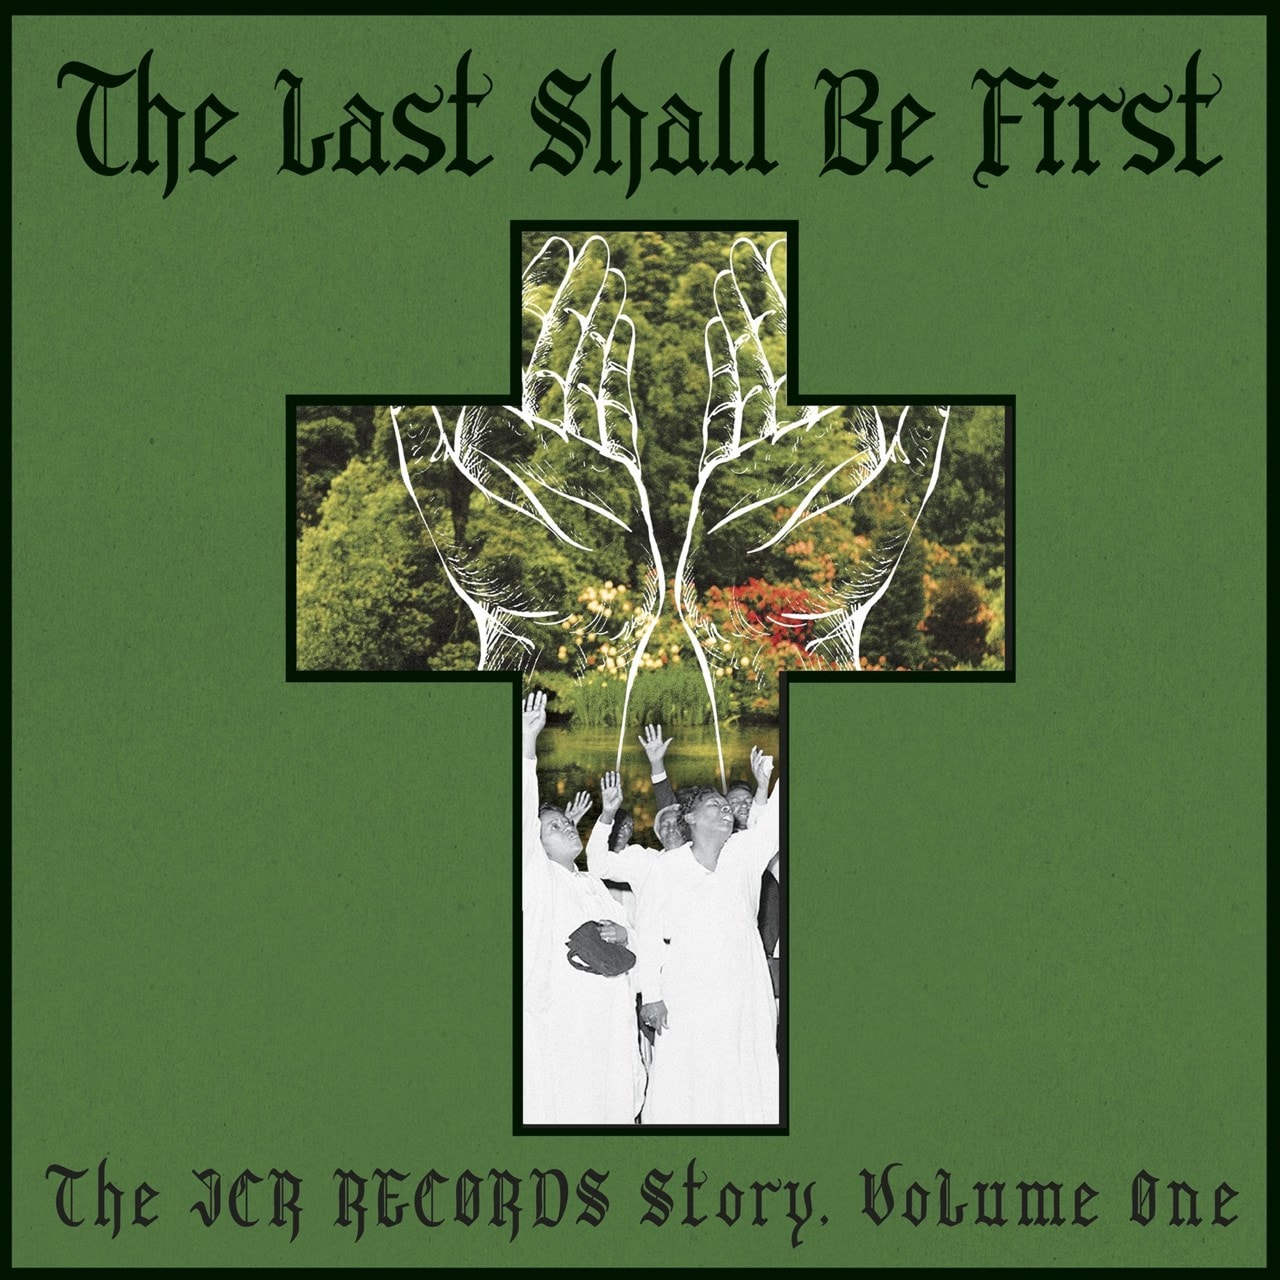 The Last Shall Be First: The JCR Records Story - Volume 1 - 1